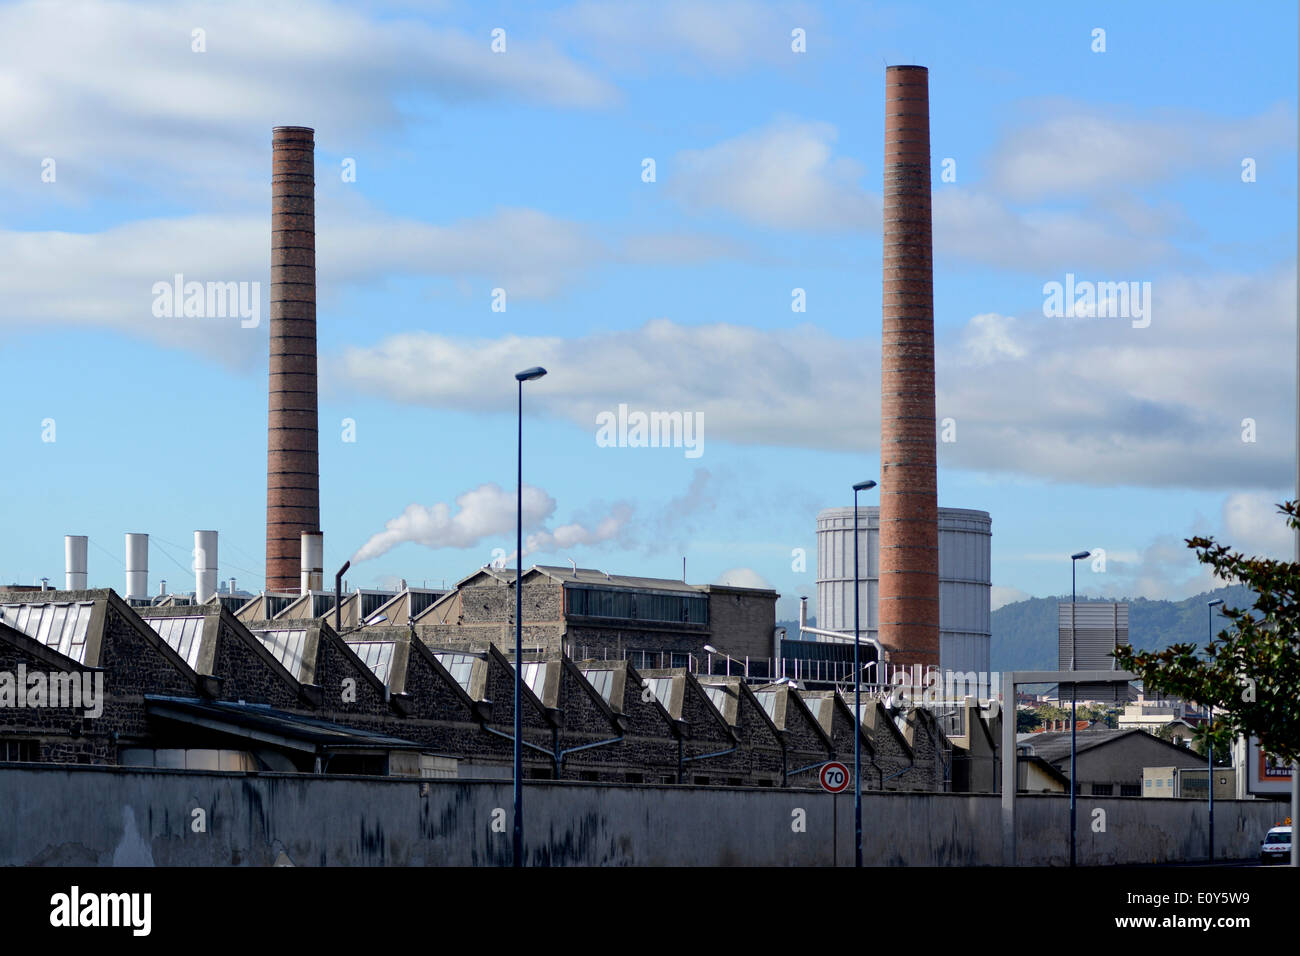 Michelin factory at Clermont-Ferrand, France - Stock Image